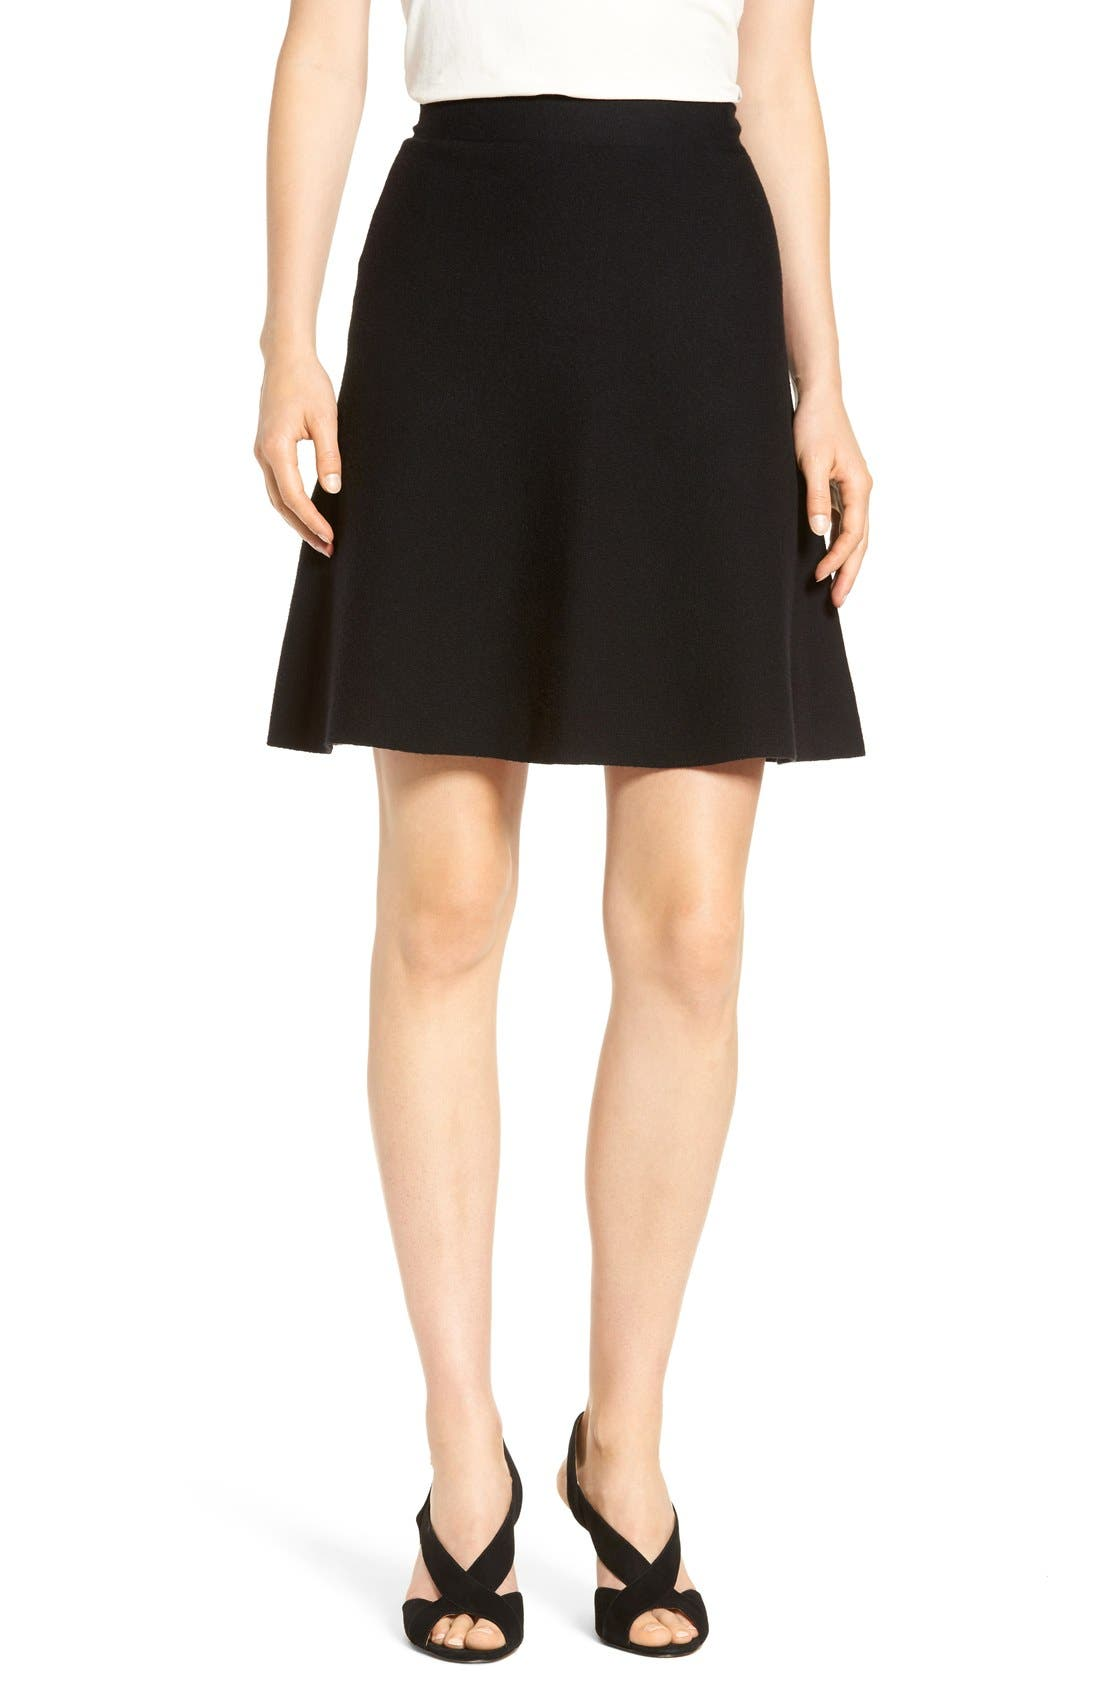 Alternate Image 1 Selected - Halogen® Knit Skater Skirt (Regular & Petite)